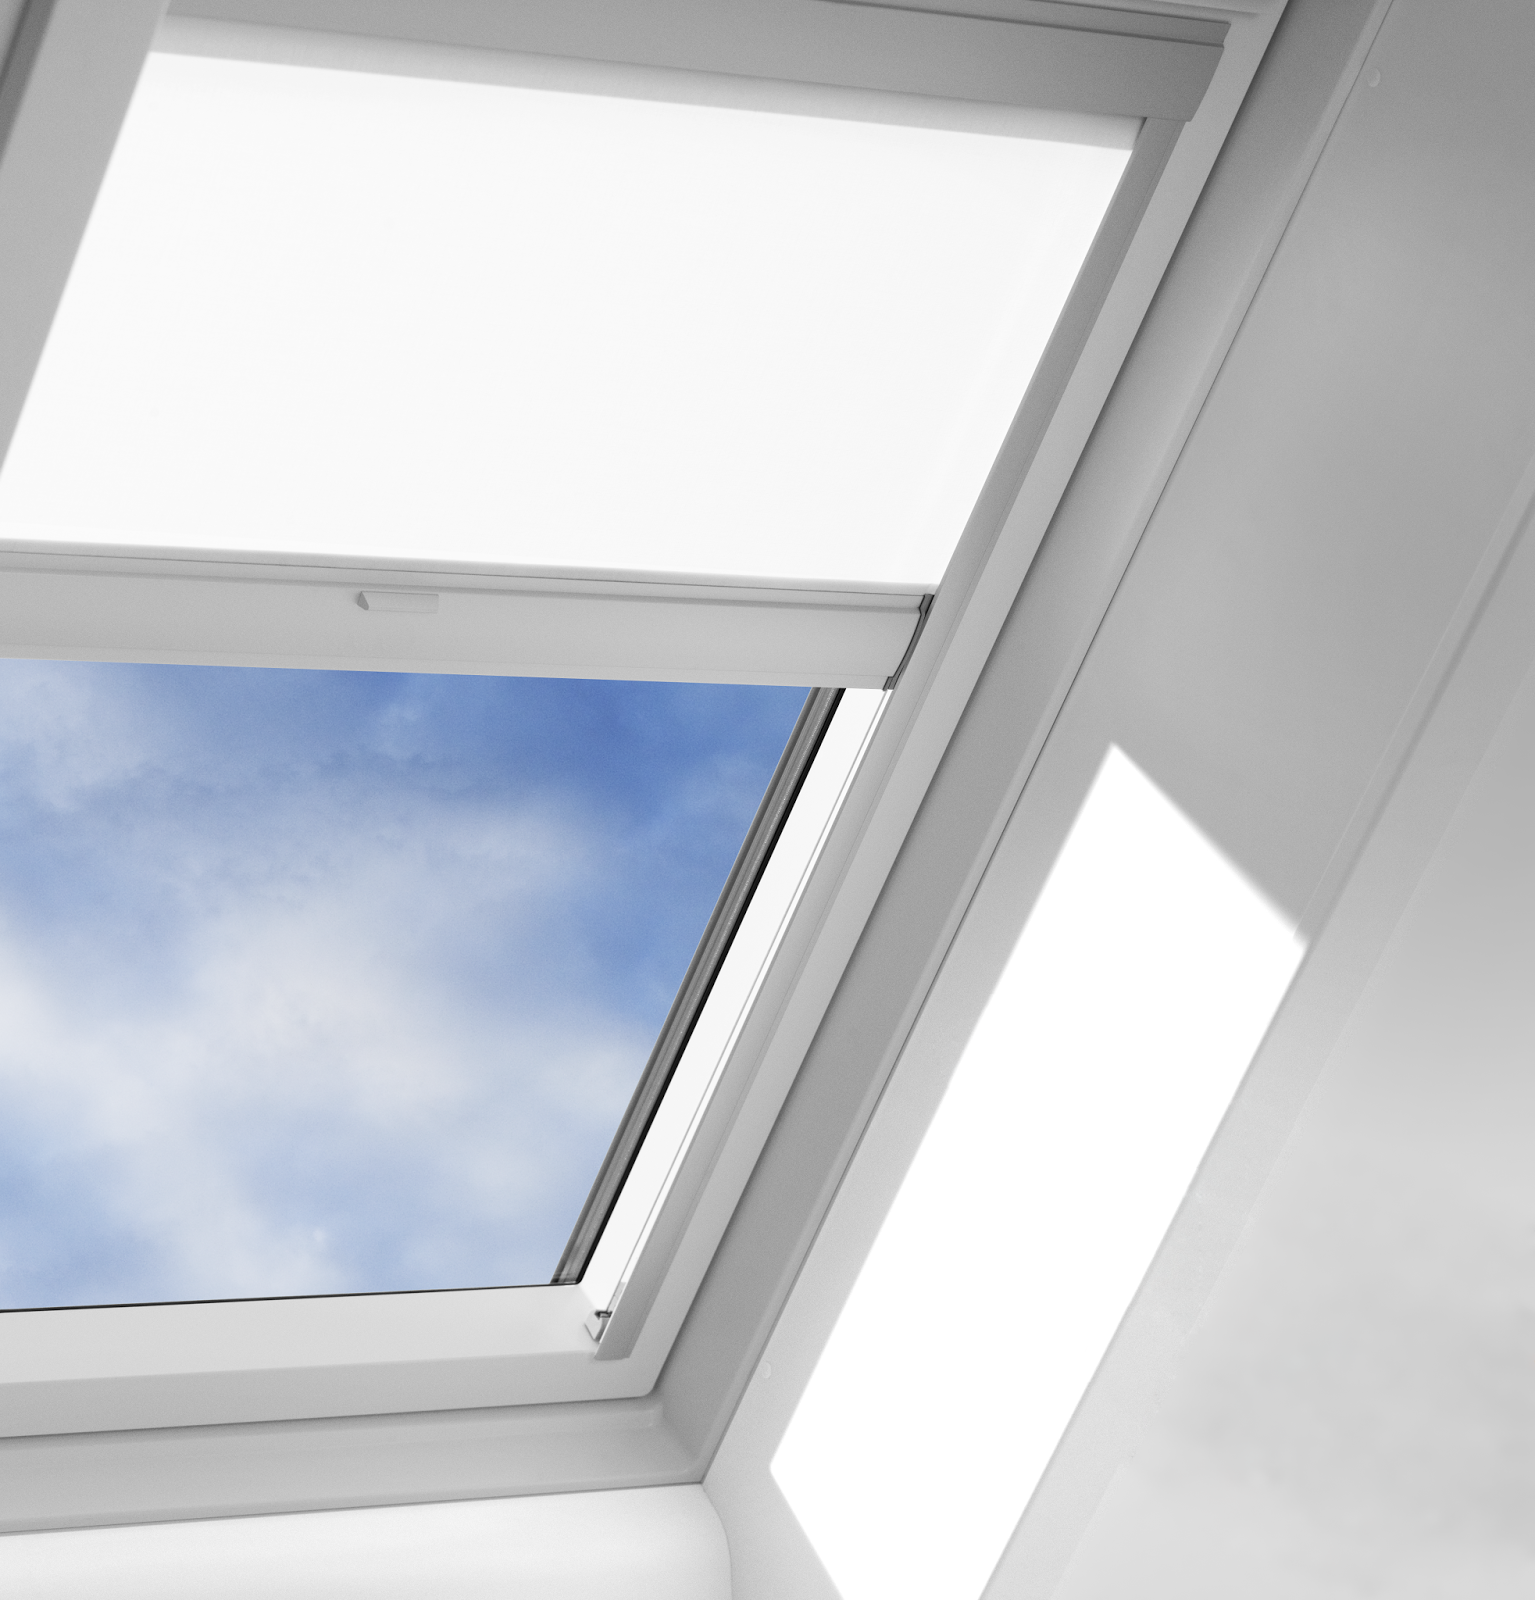 Interioir skylight with shade and clouds - VELUX STOCK.png